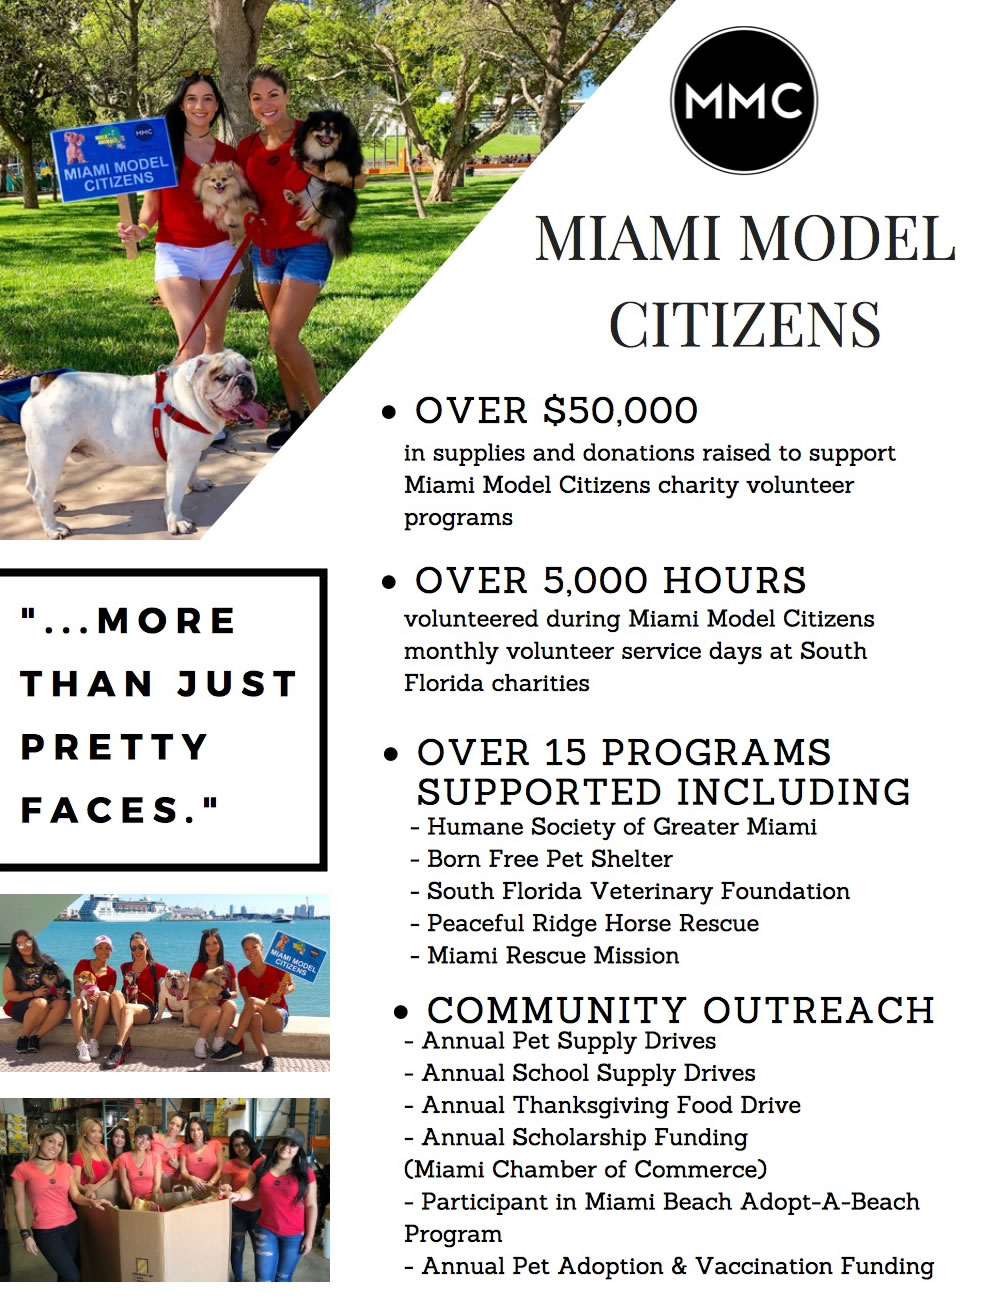 Miami Model Citizens